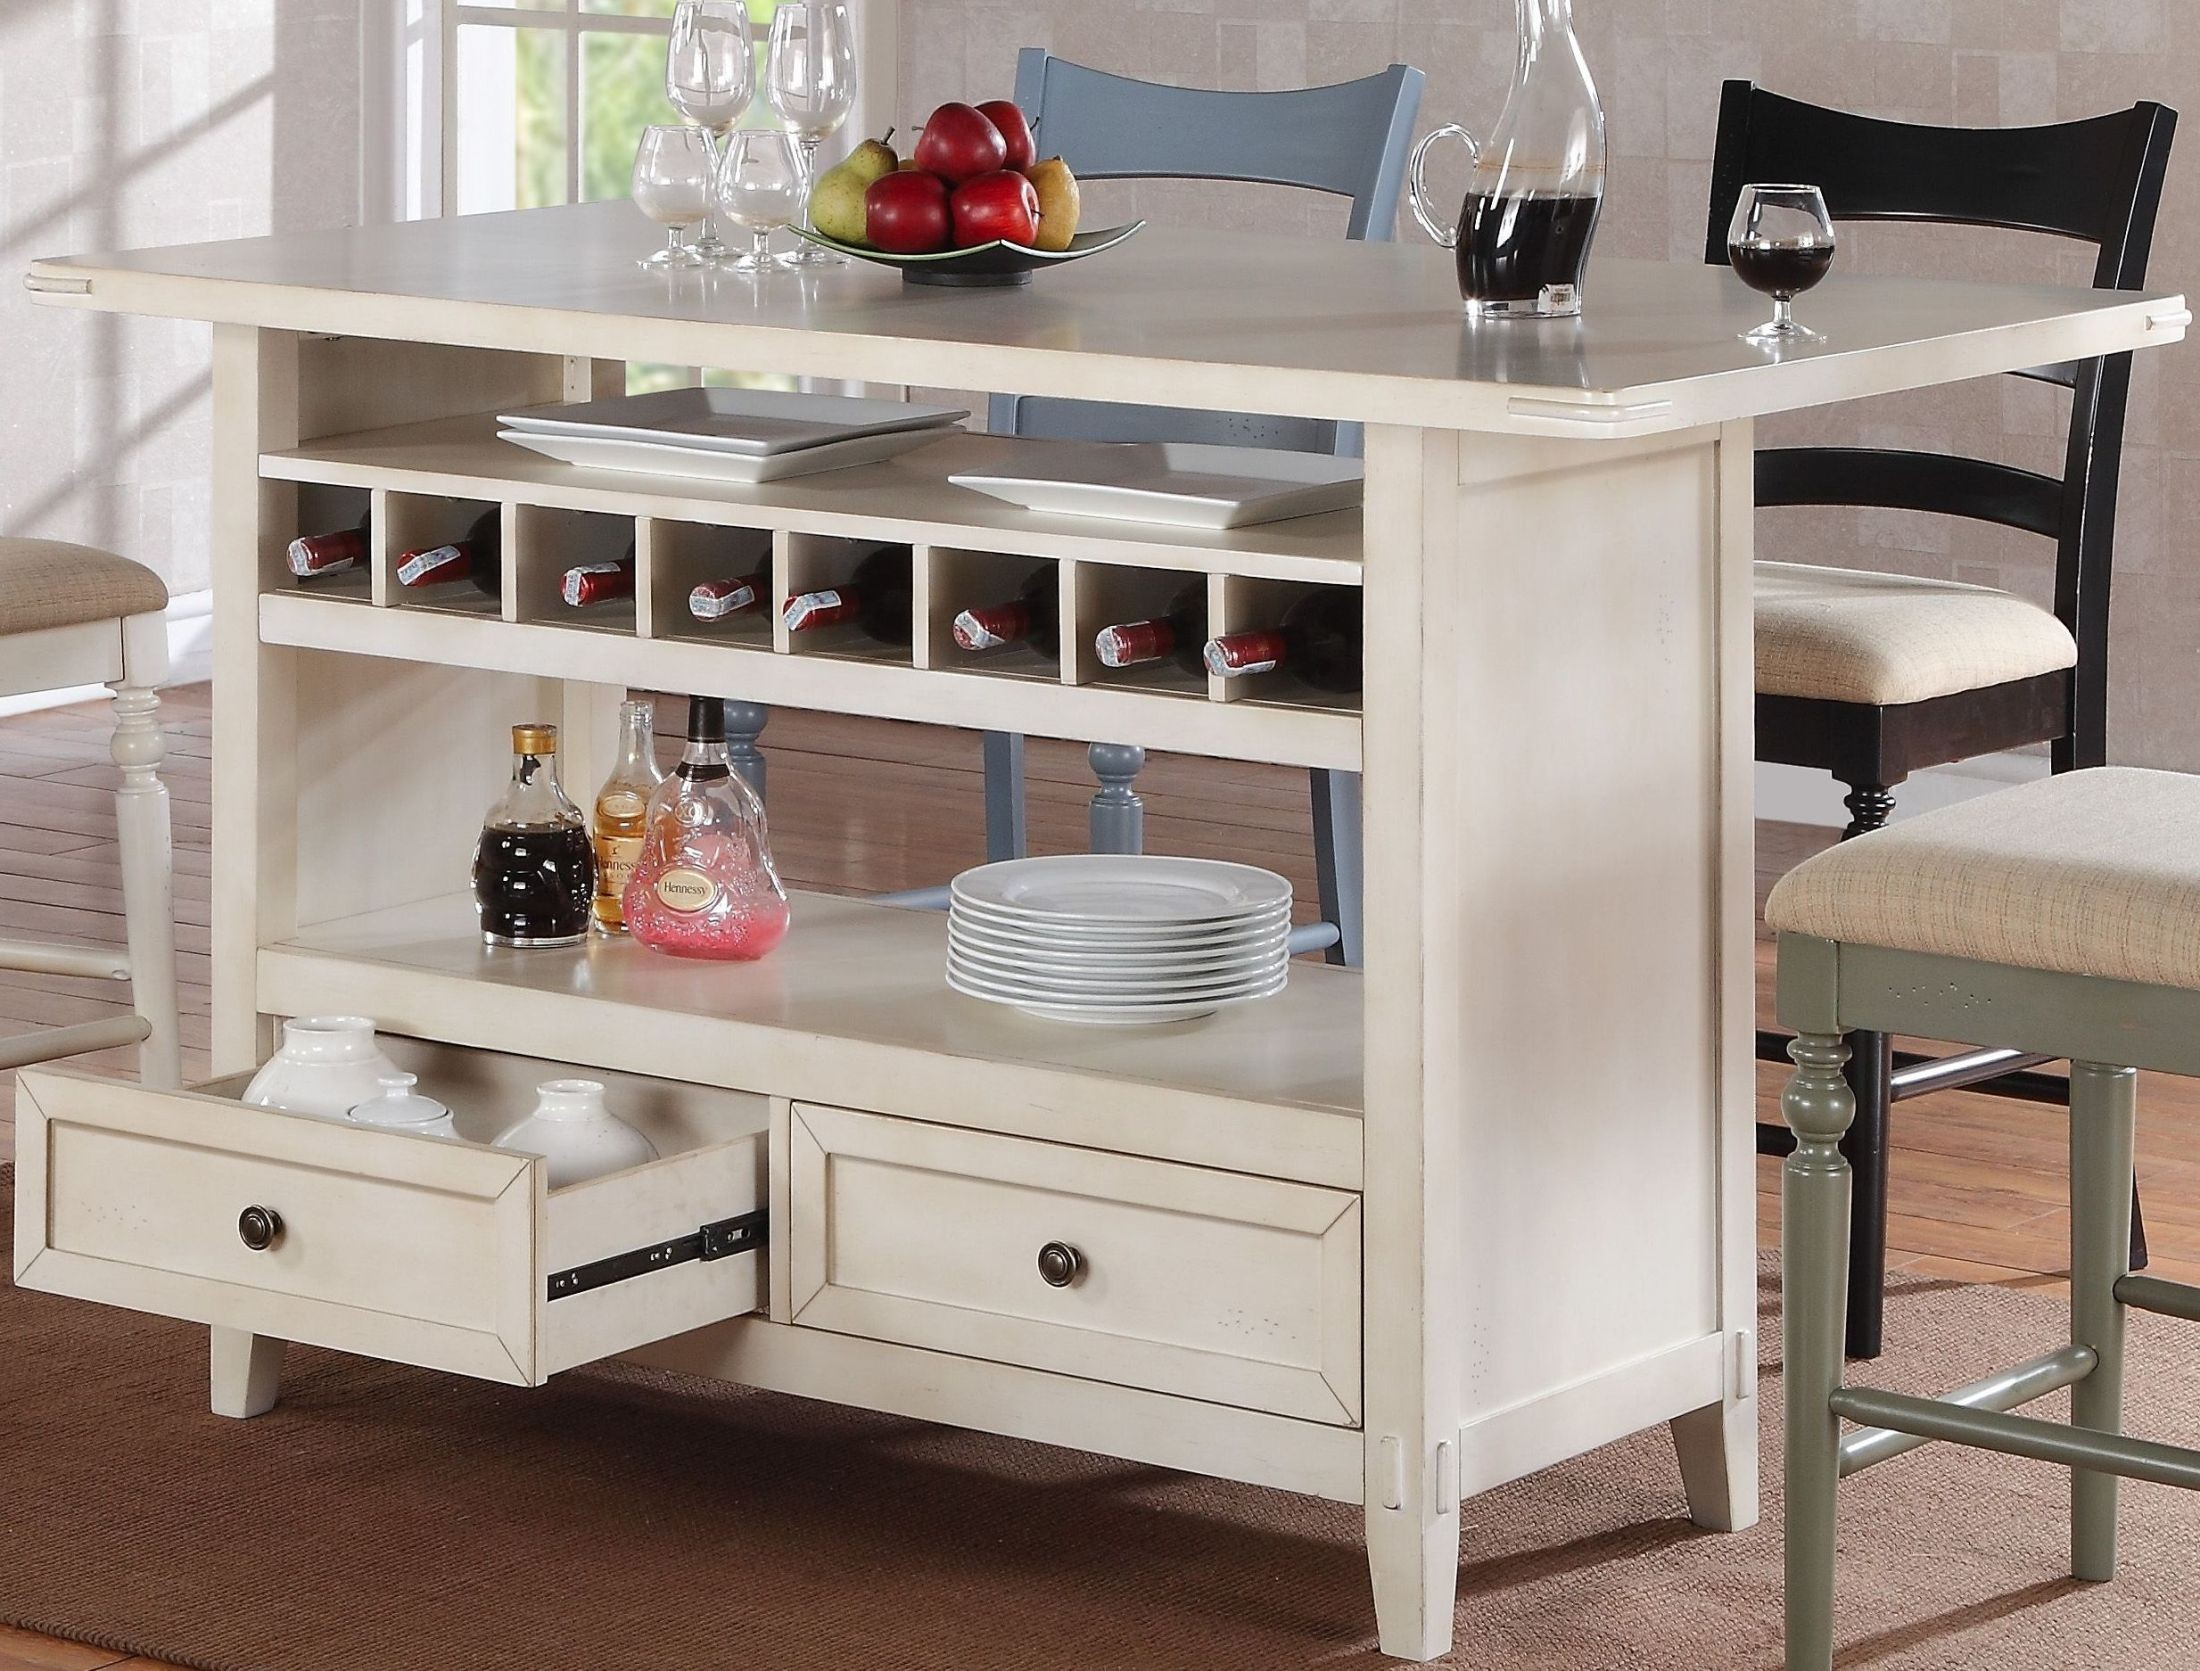 Four Seasons Antique White Kitchen Island From Eci Furniture Coleman Furniture